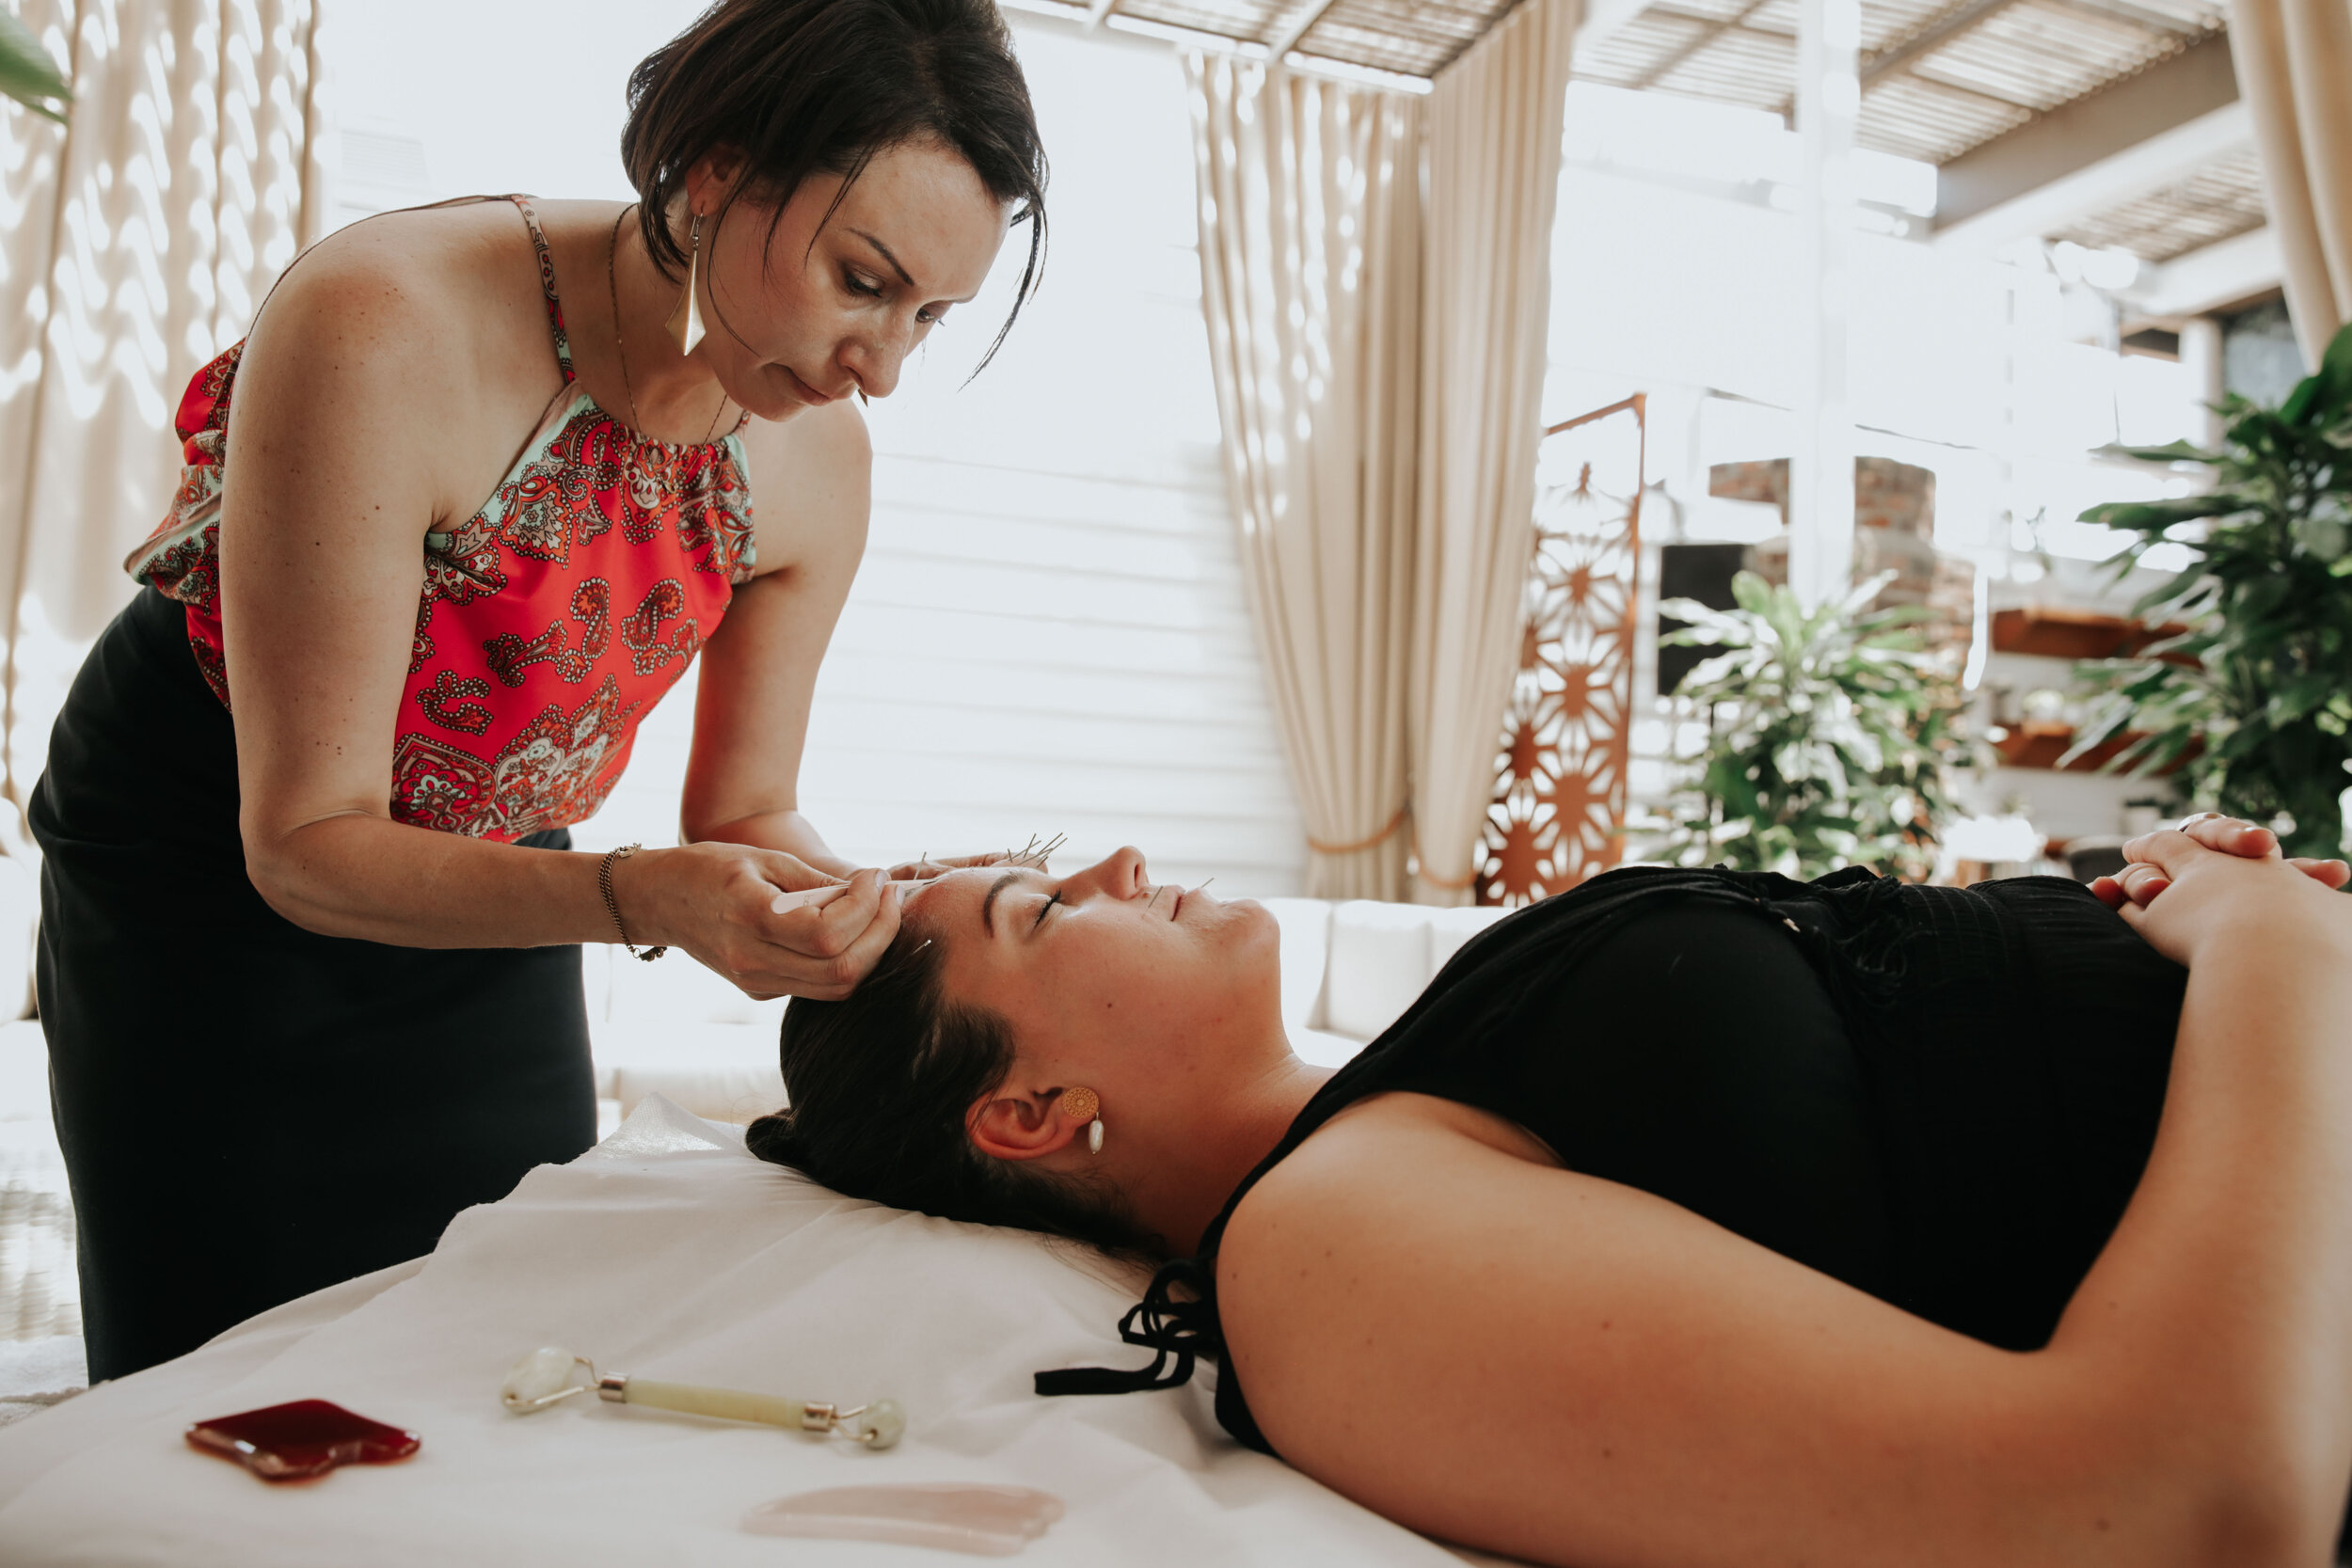 mindful mini–spa - Treat yourself to a holistic green beauty treatment. Discover the latest techniques that you can try for your own self care rituals and educate yourself on the benefits of clean beauty products.